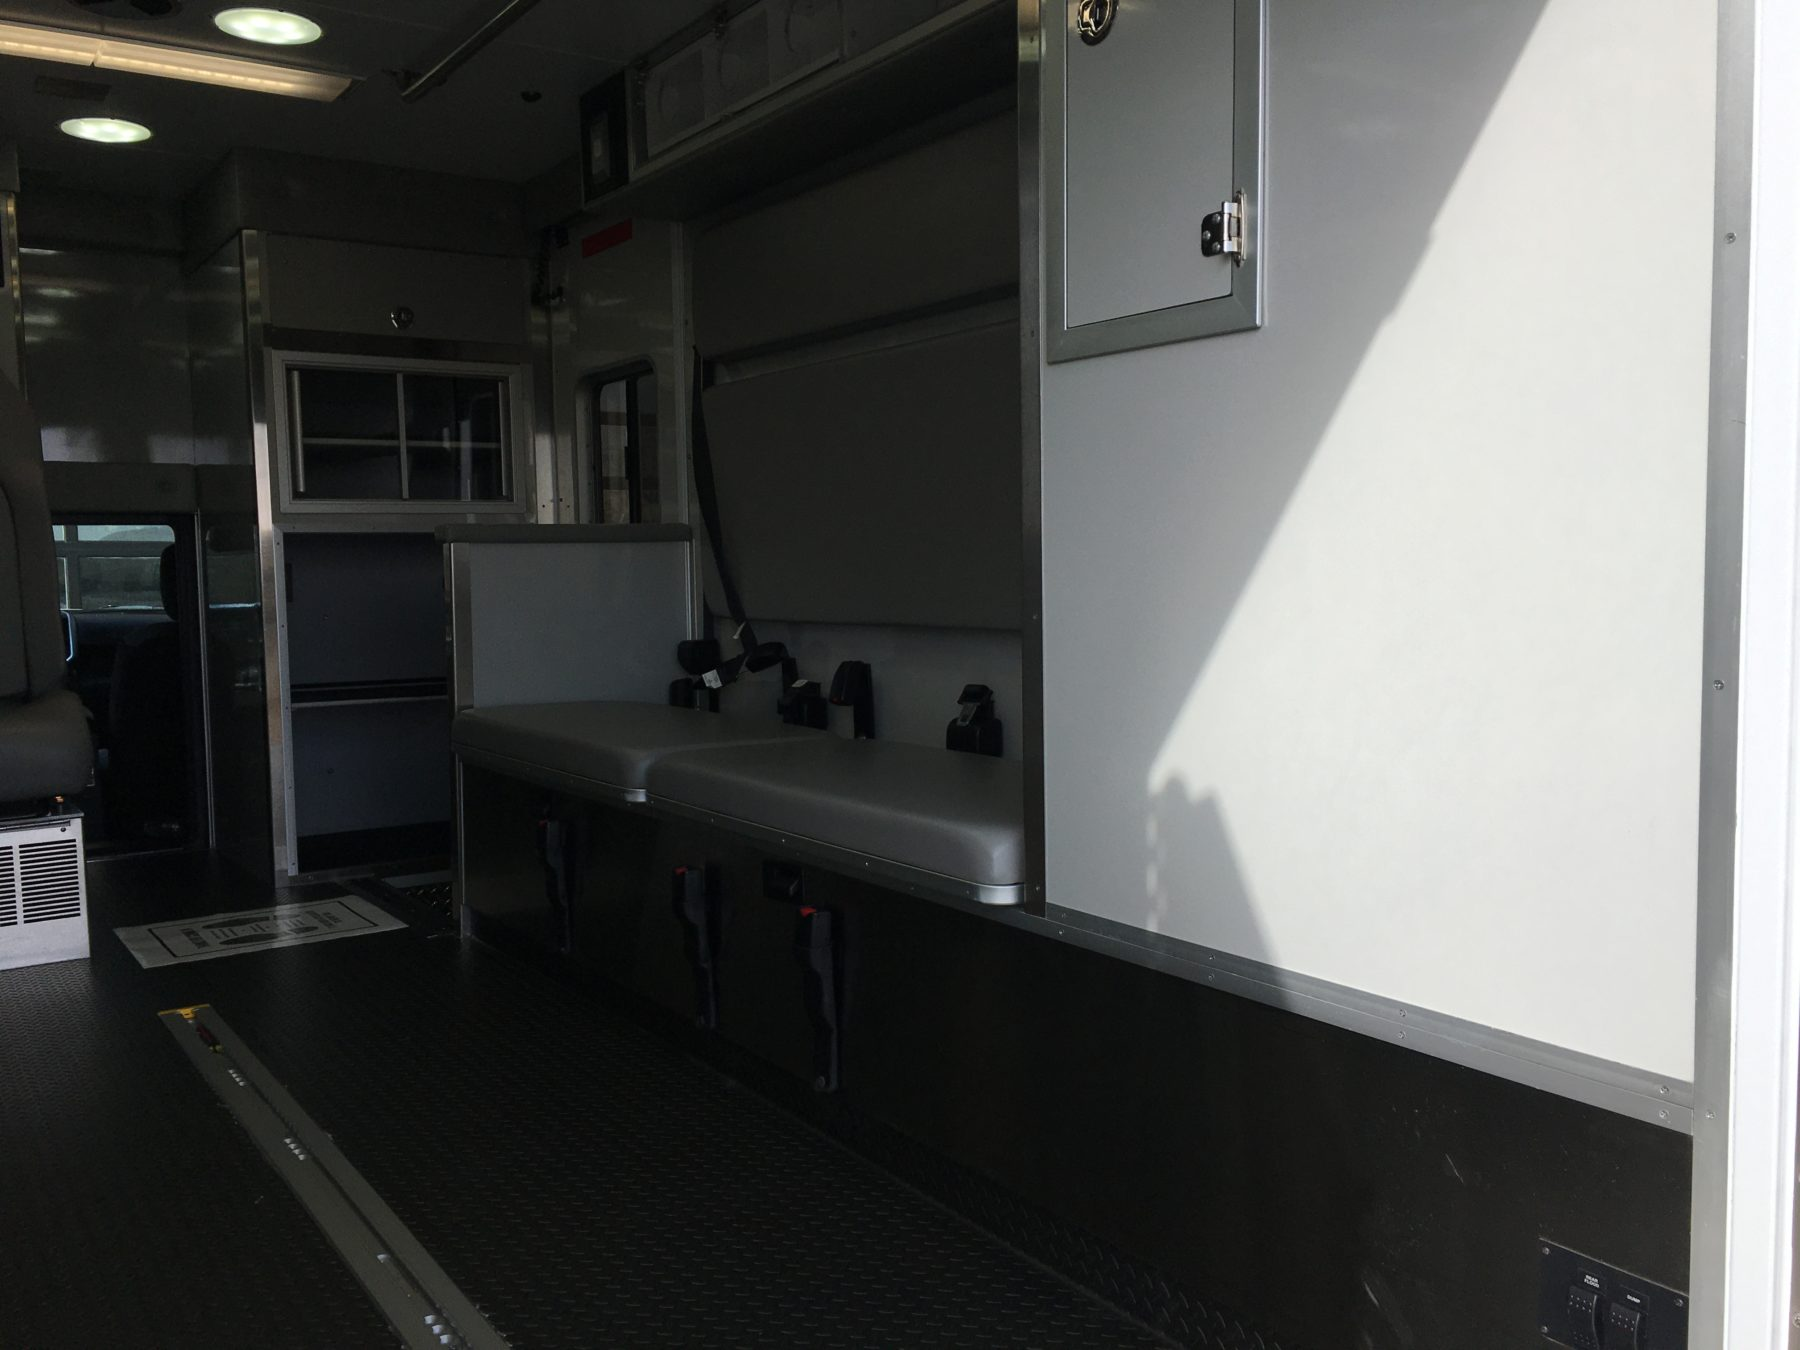 2019 Ram 4500 4x4 Heavy Duty Ambulance For Sale – Picture 13